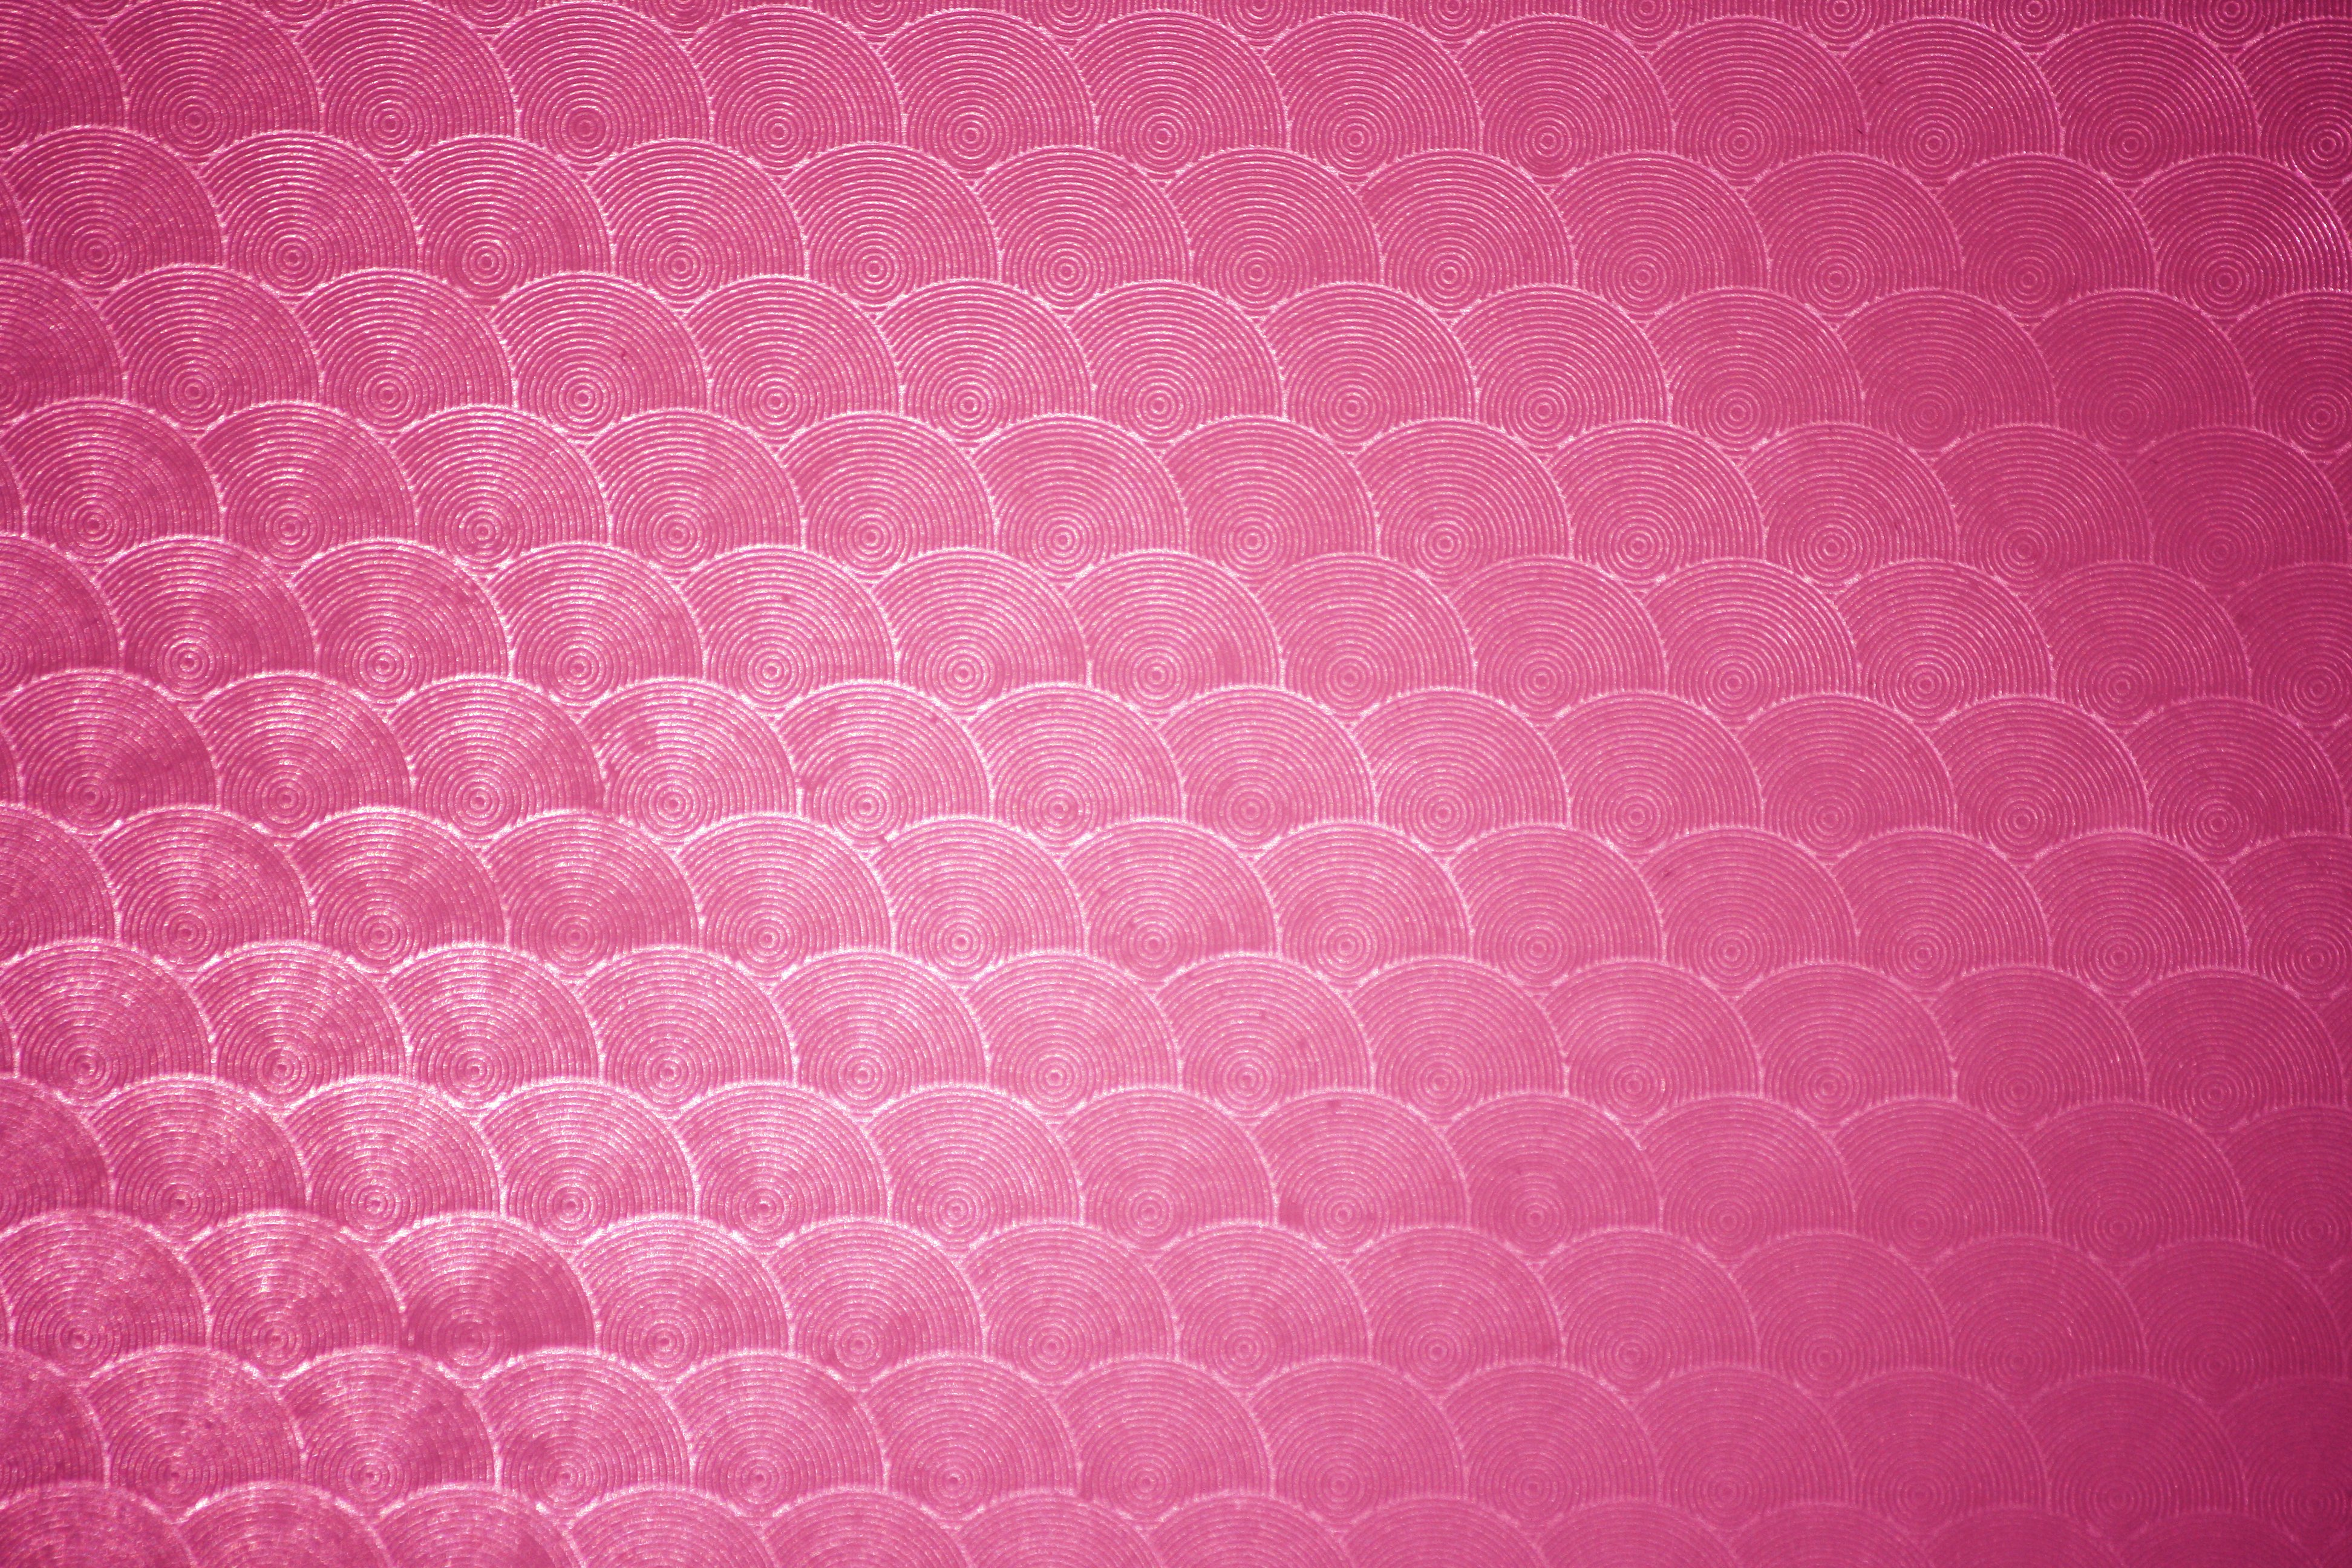 Light Pink Textured Wallpaper - phebus